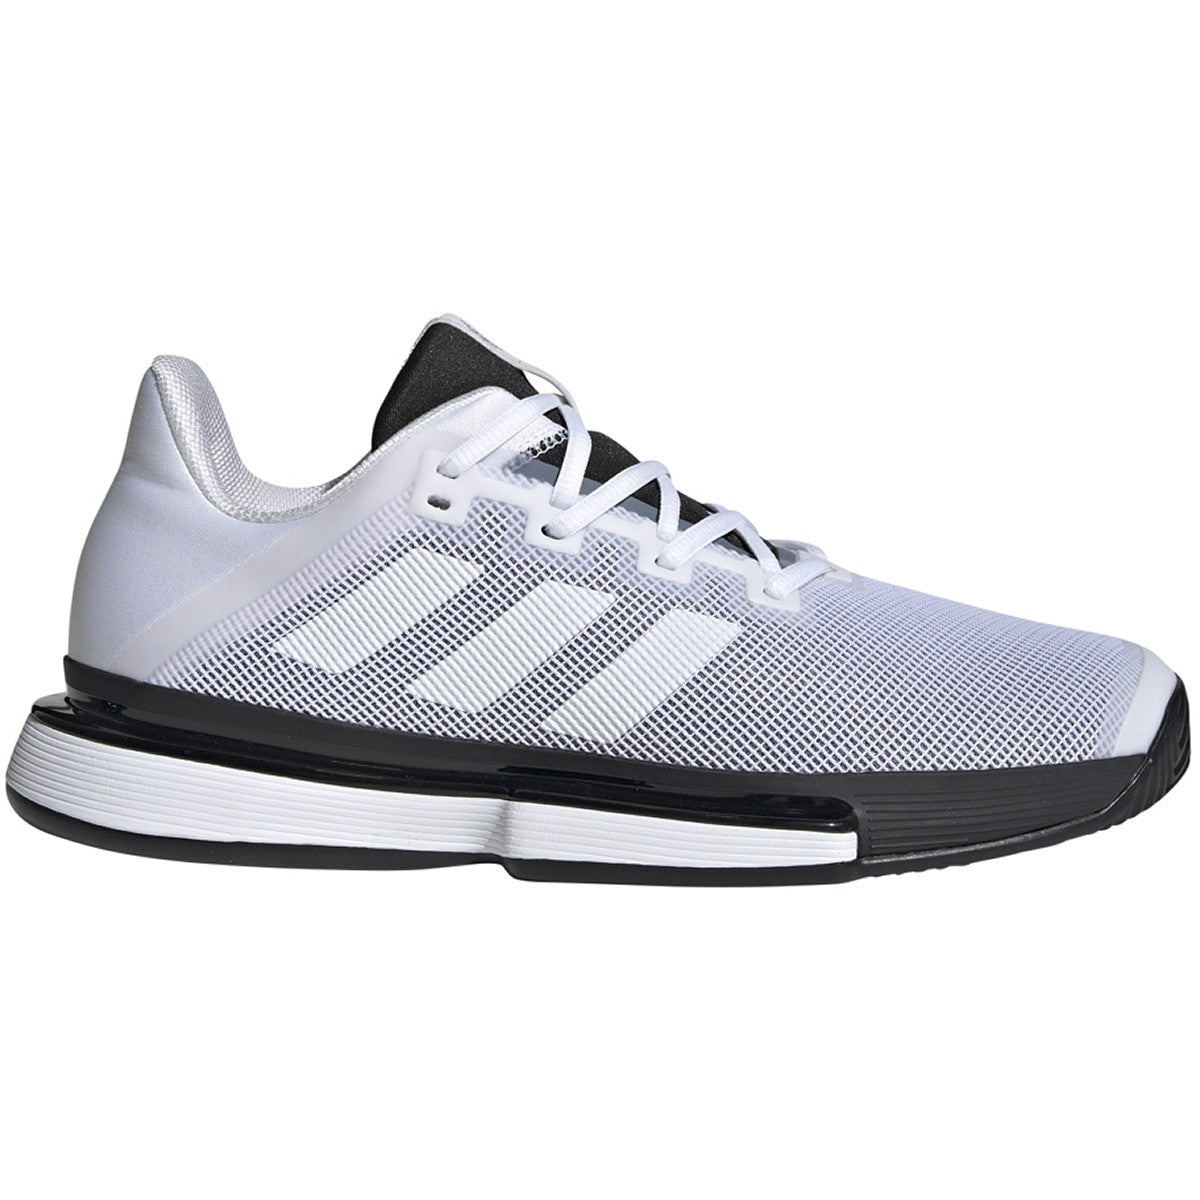 Mens SoleMatch Bounce White/Balck